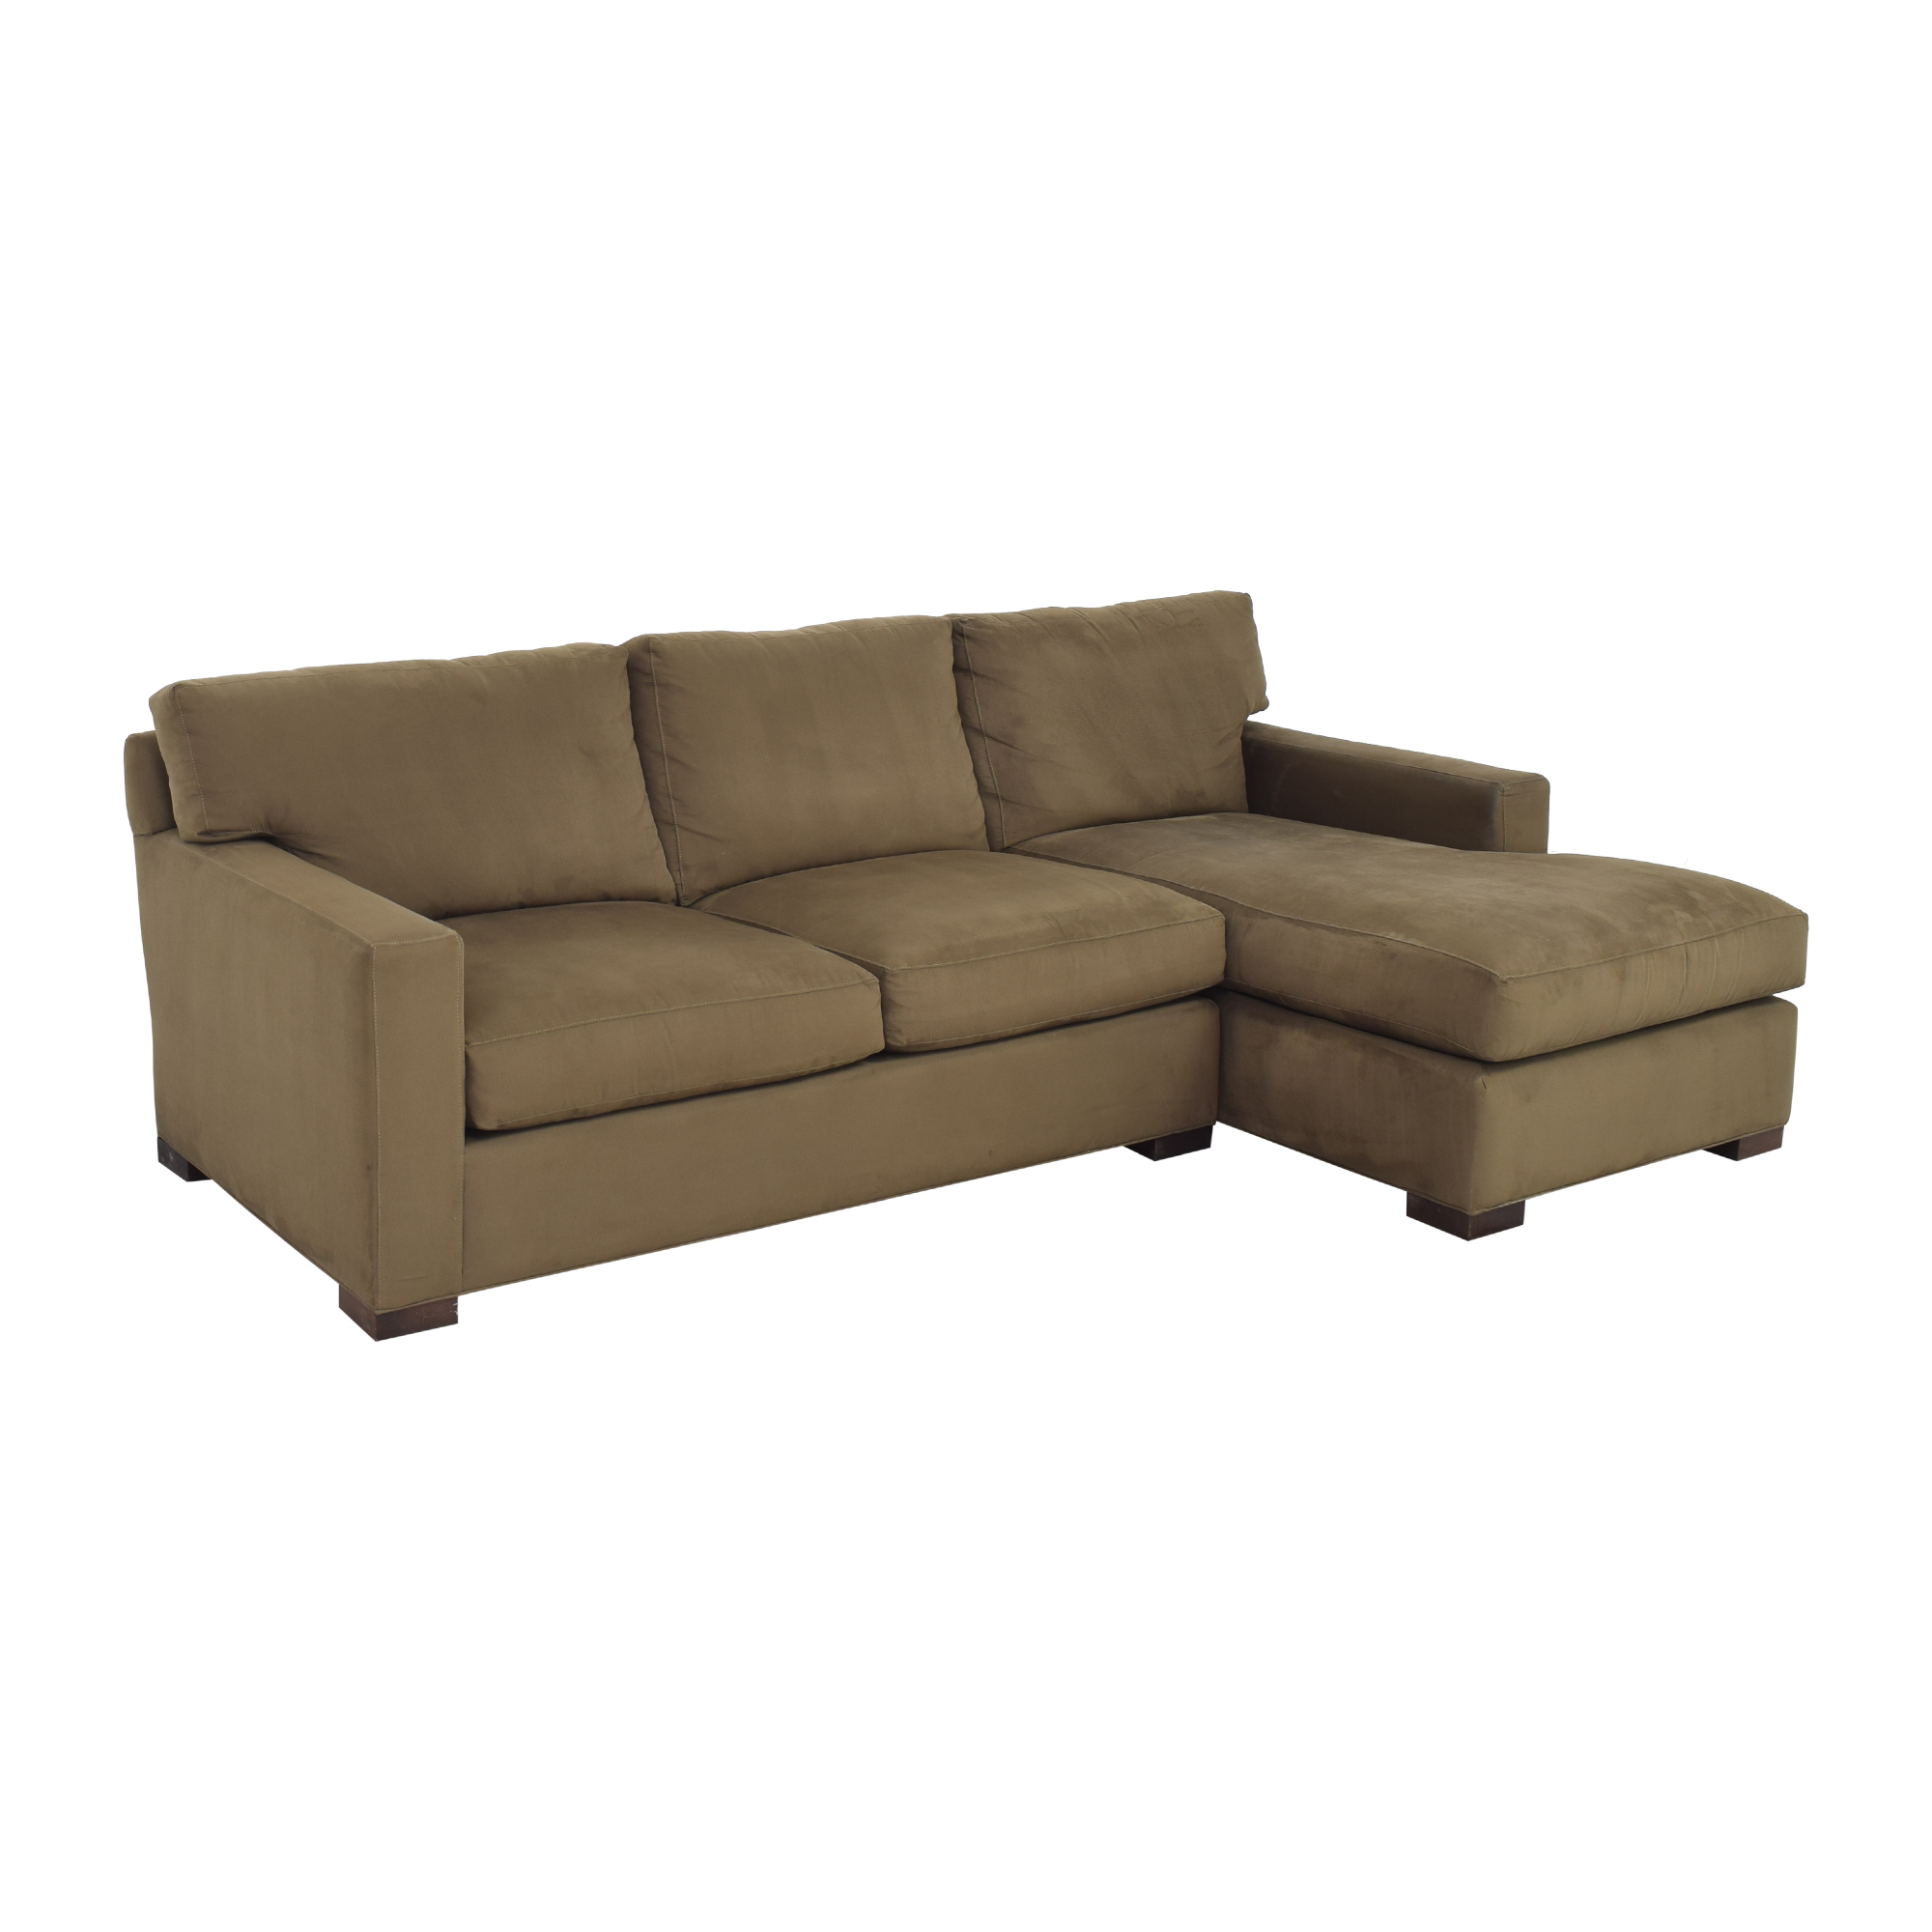 Crate & Barrel Crate & Barrel Axis II Two Piece Sectional Sofa price